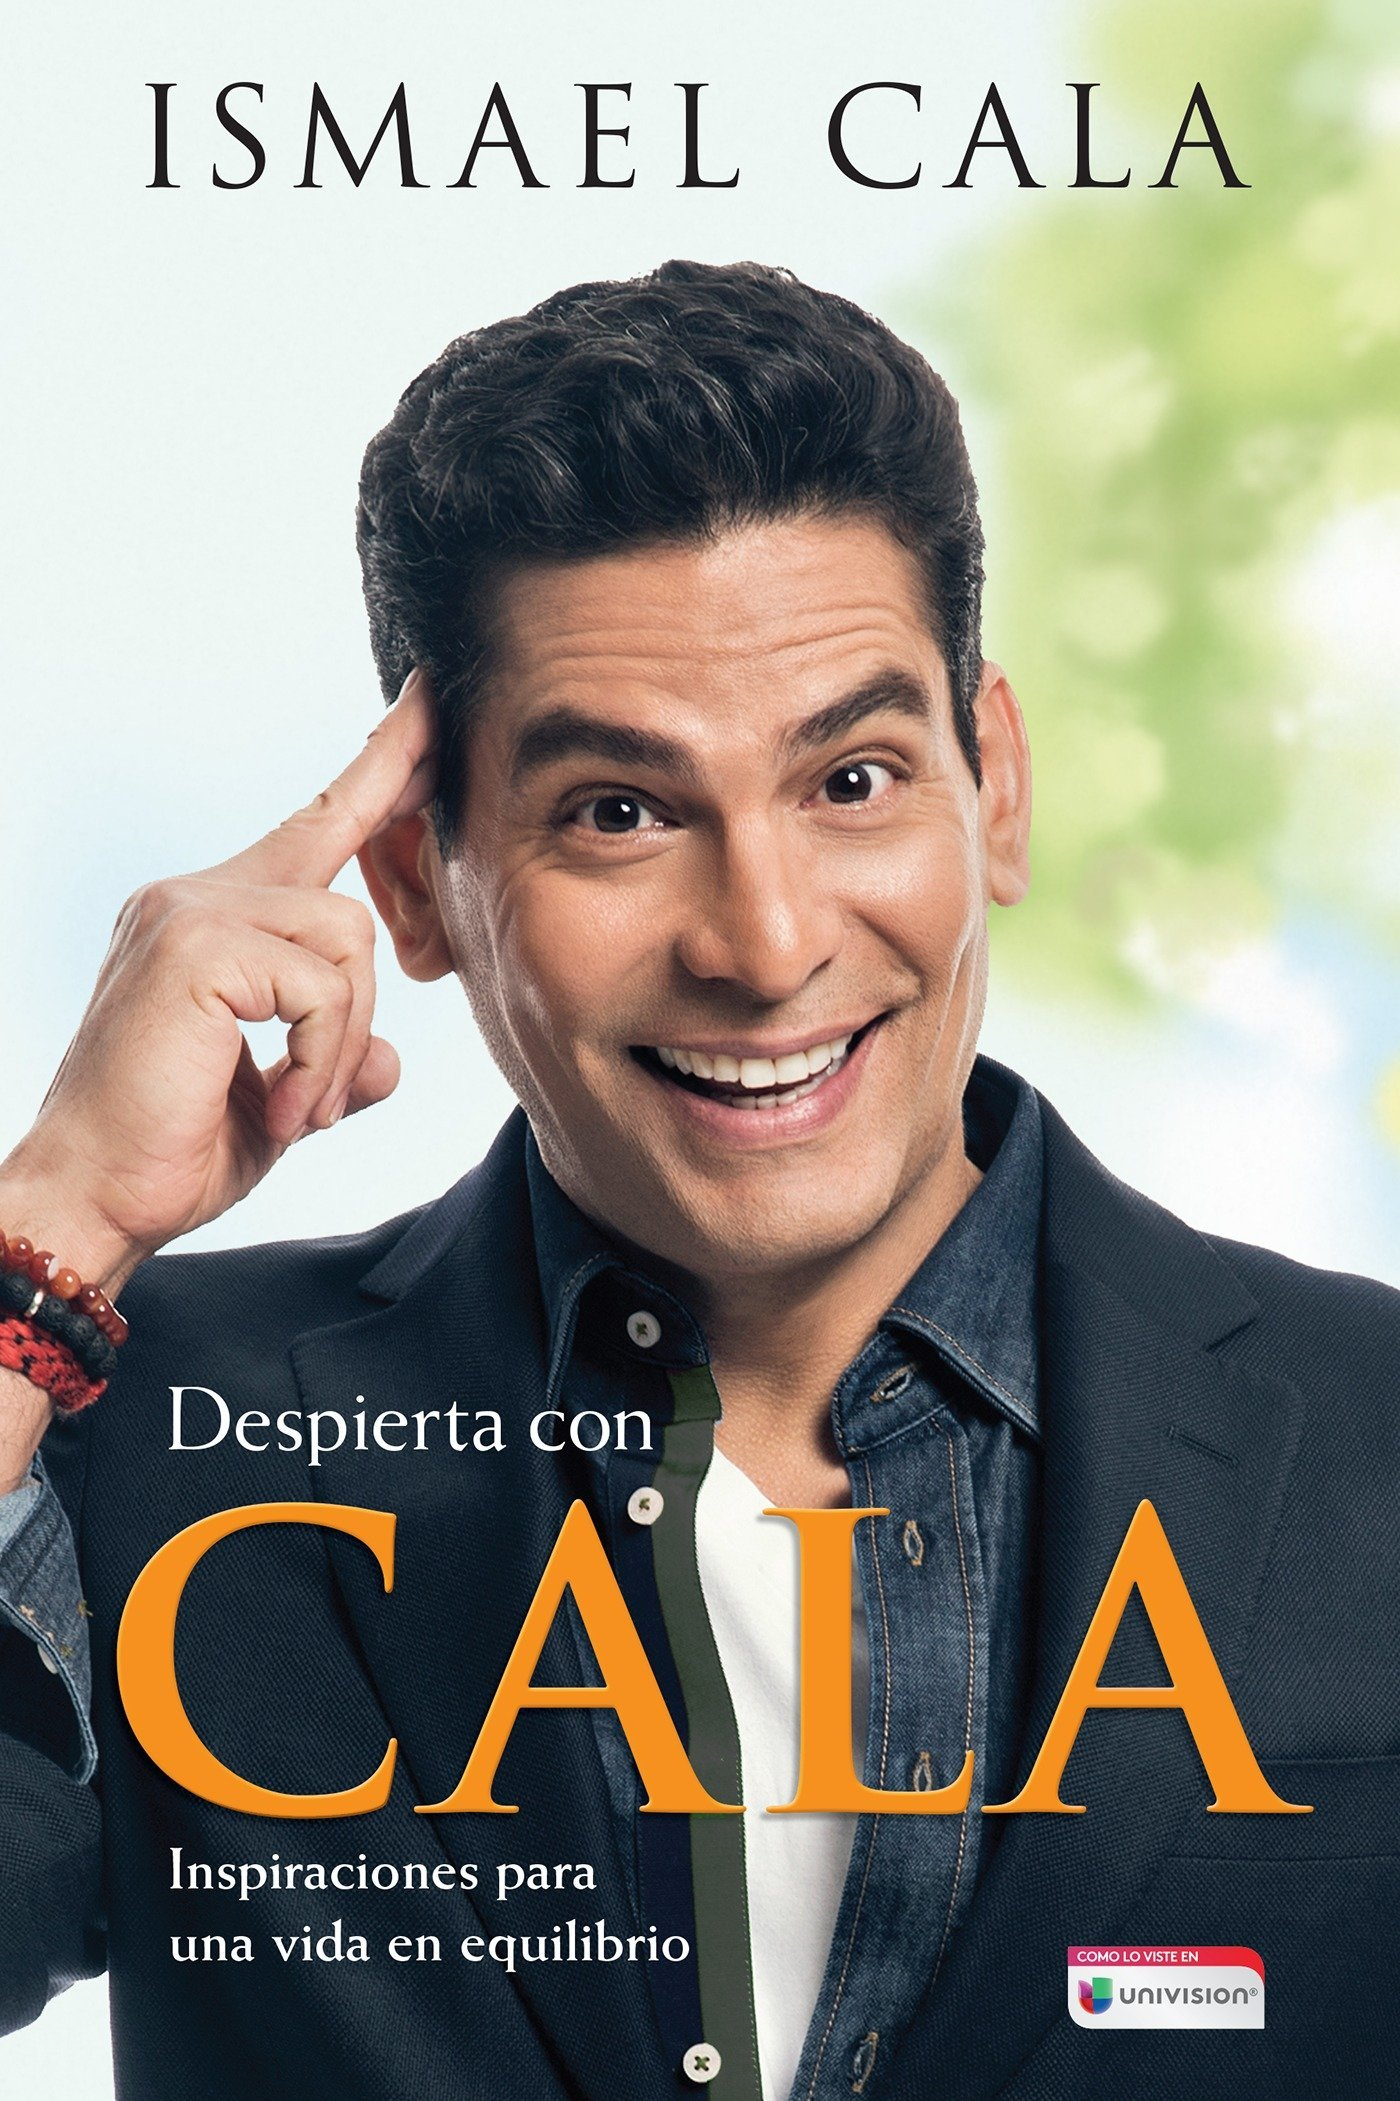 Despierta con Cala / Wake Up With Cala: Inspirations for a Balanced Life (Spanish Edition) ebook